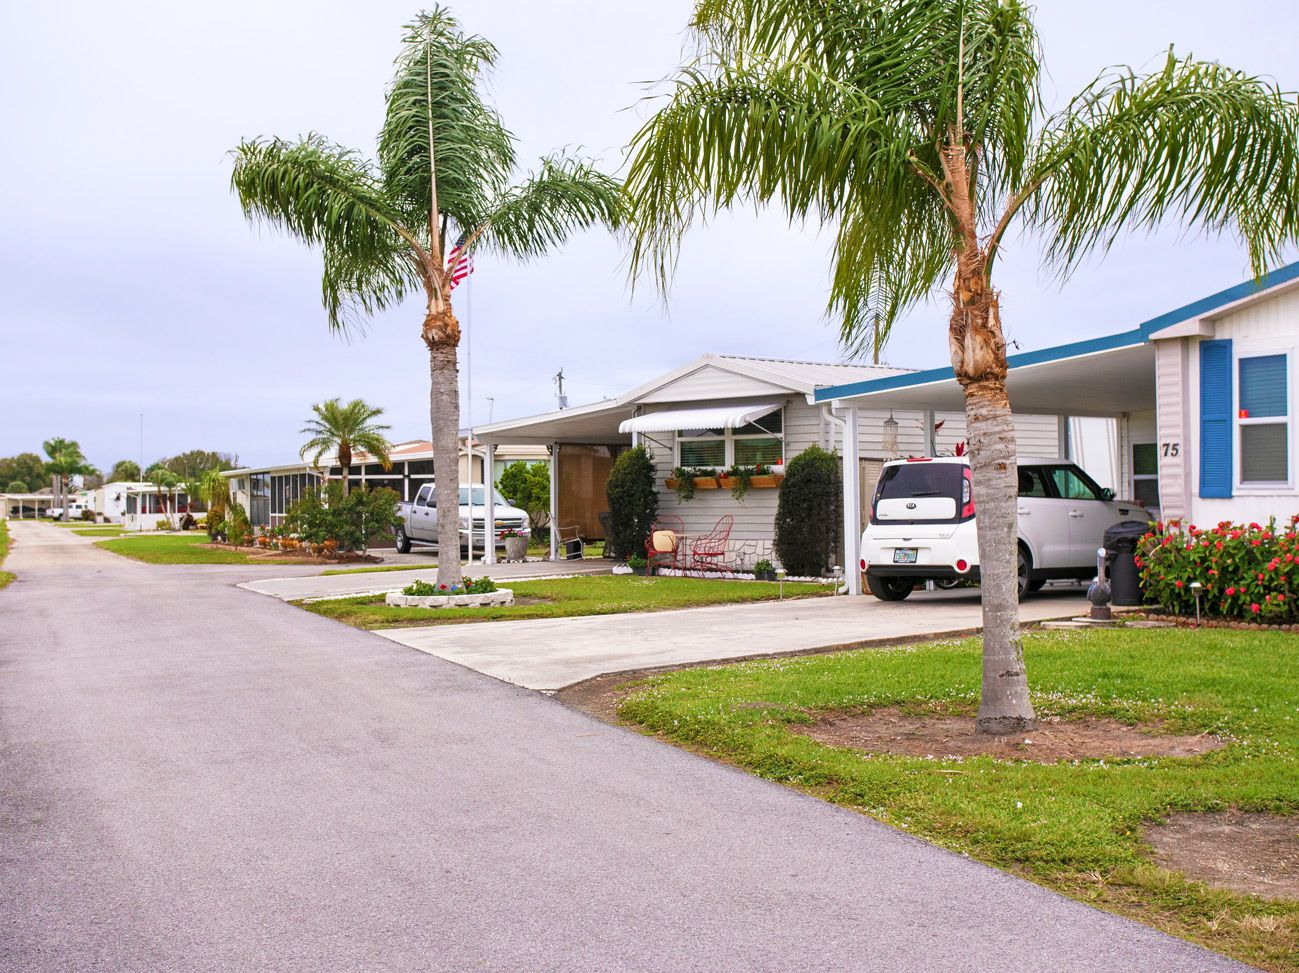 Large, well-spaced Okeechobee, FL Mobile Homes